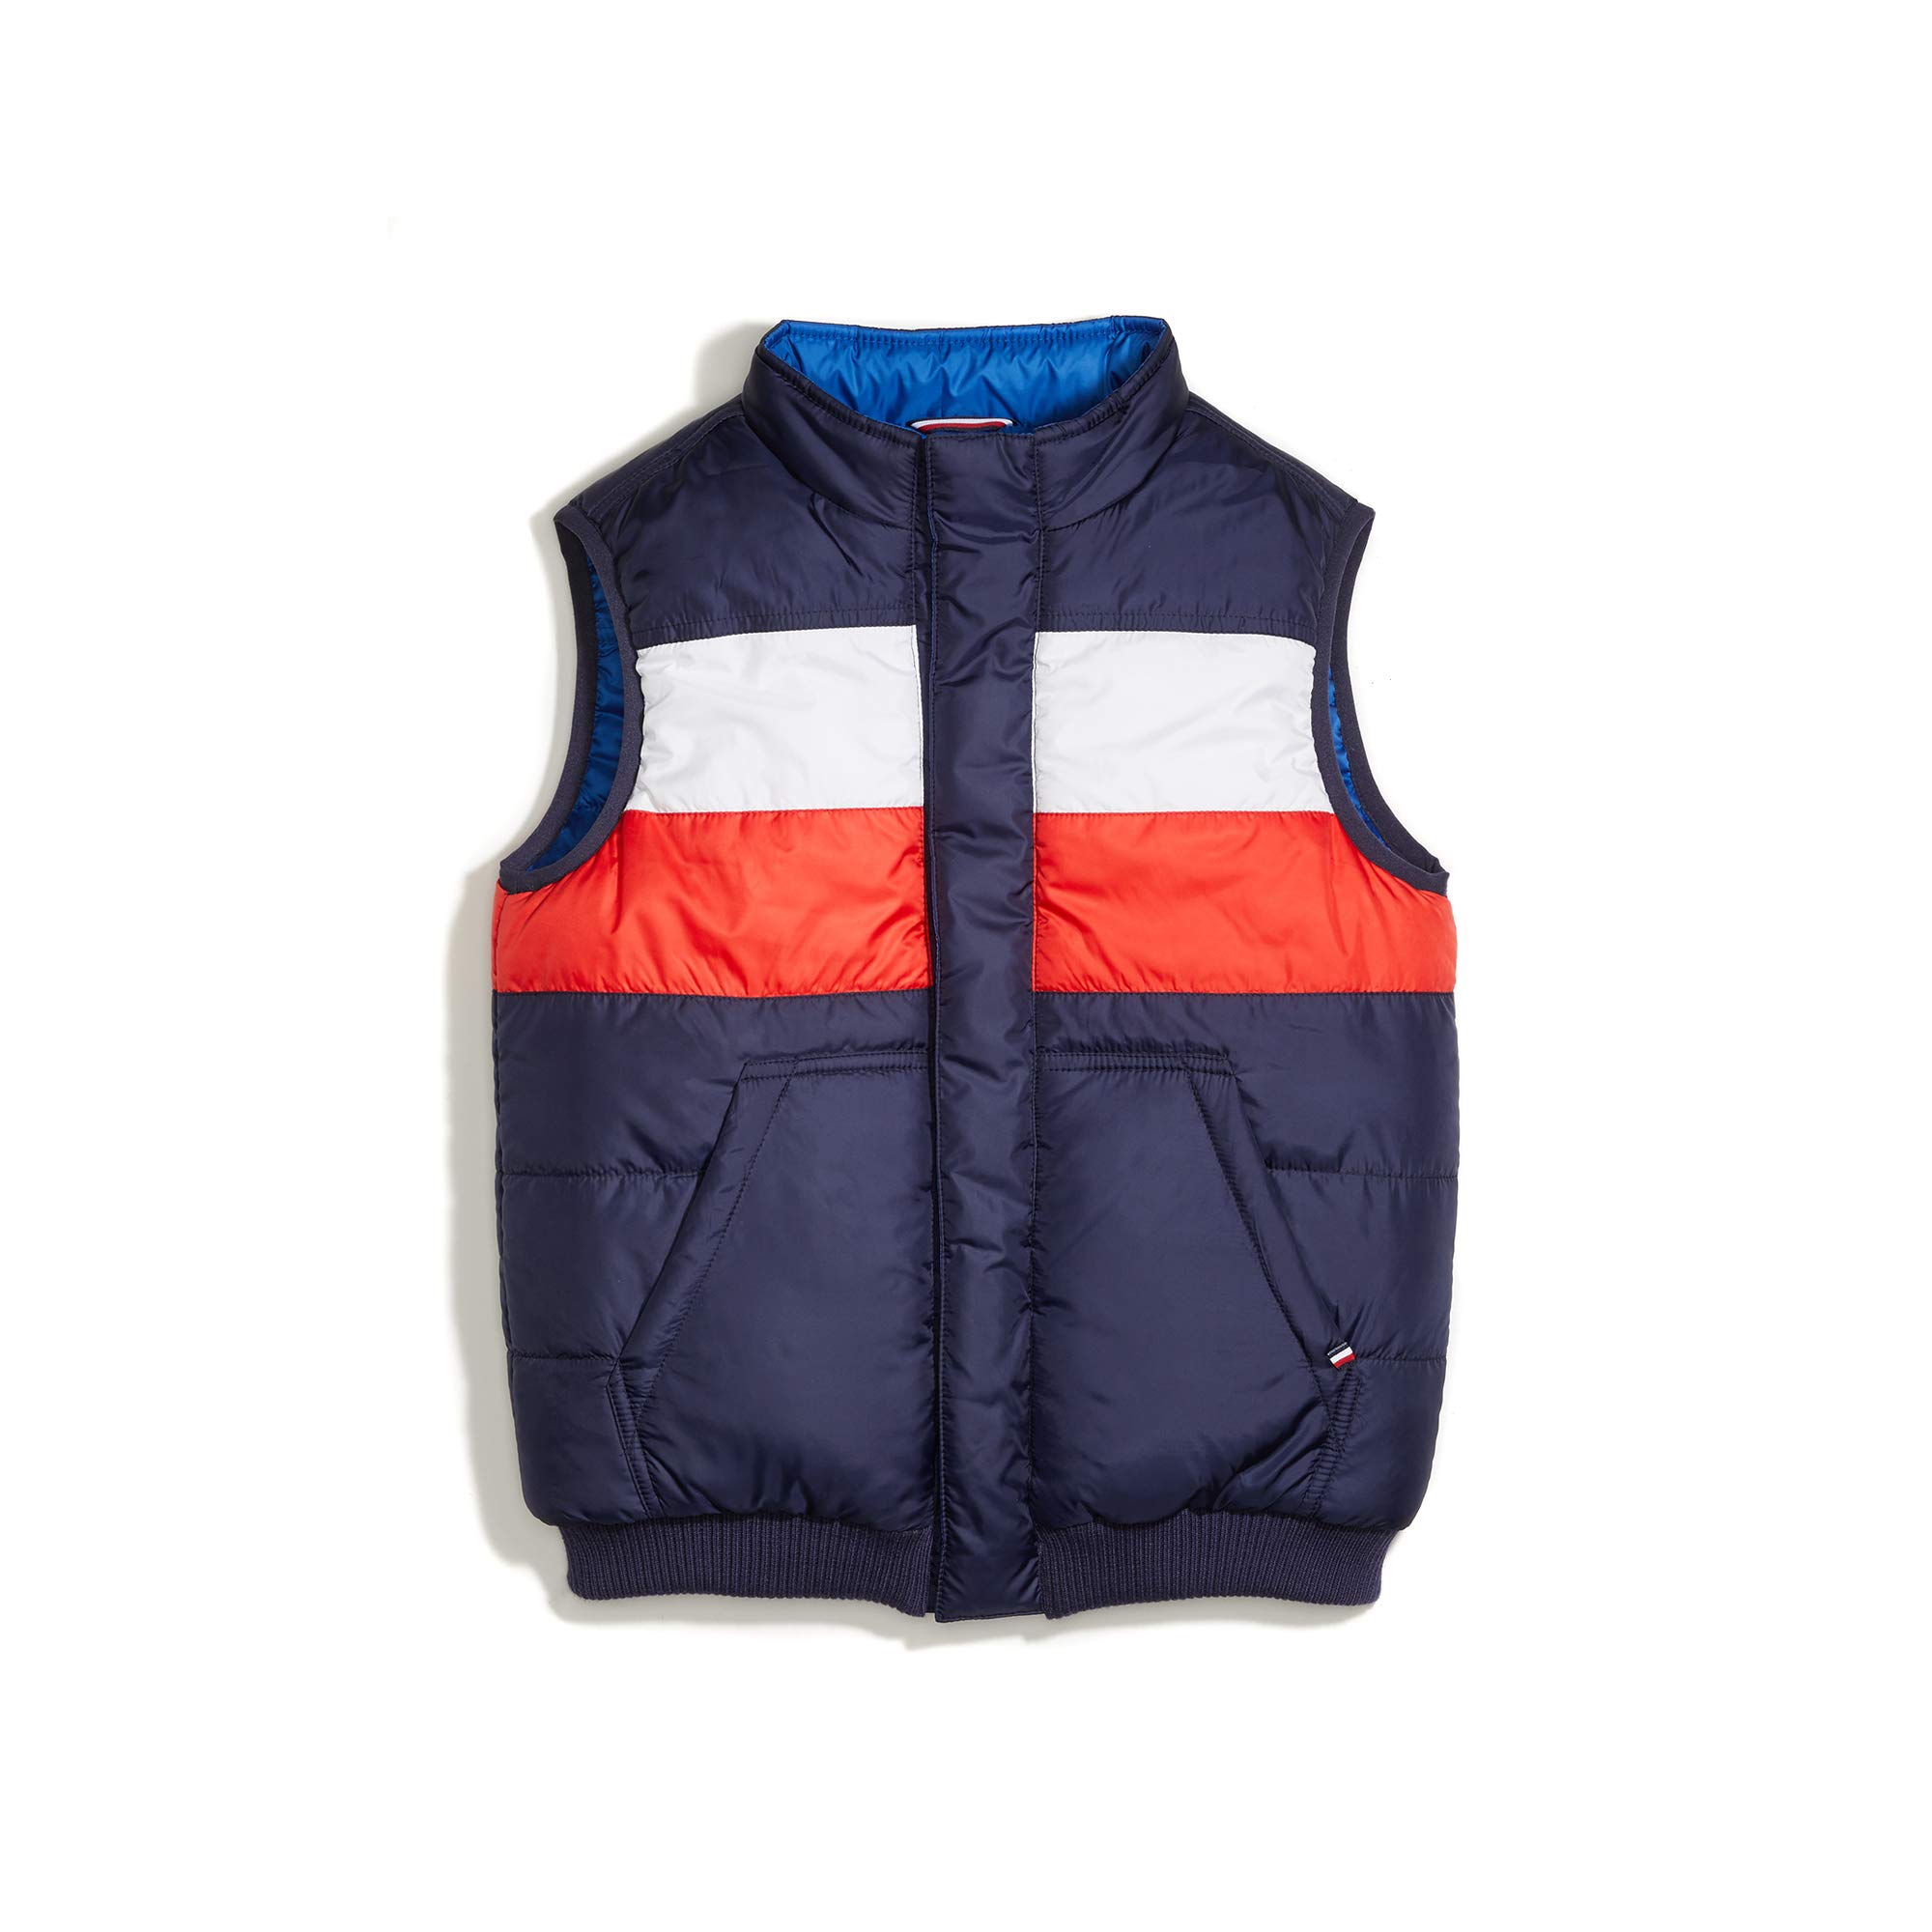 Tommy Hilfiger Boys' Adaptive Reversible Puffer Vest with Magnetic Zipper, Peacoat, XL by Tommy Hilfiger